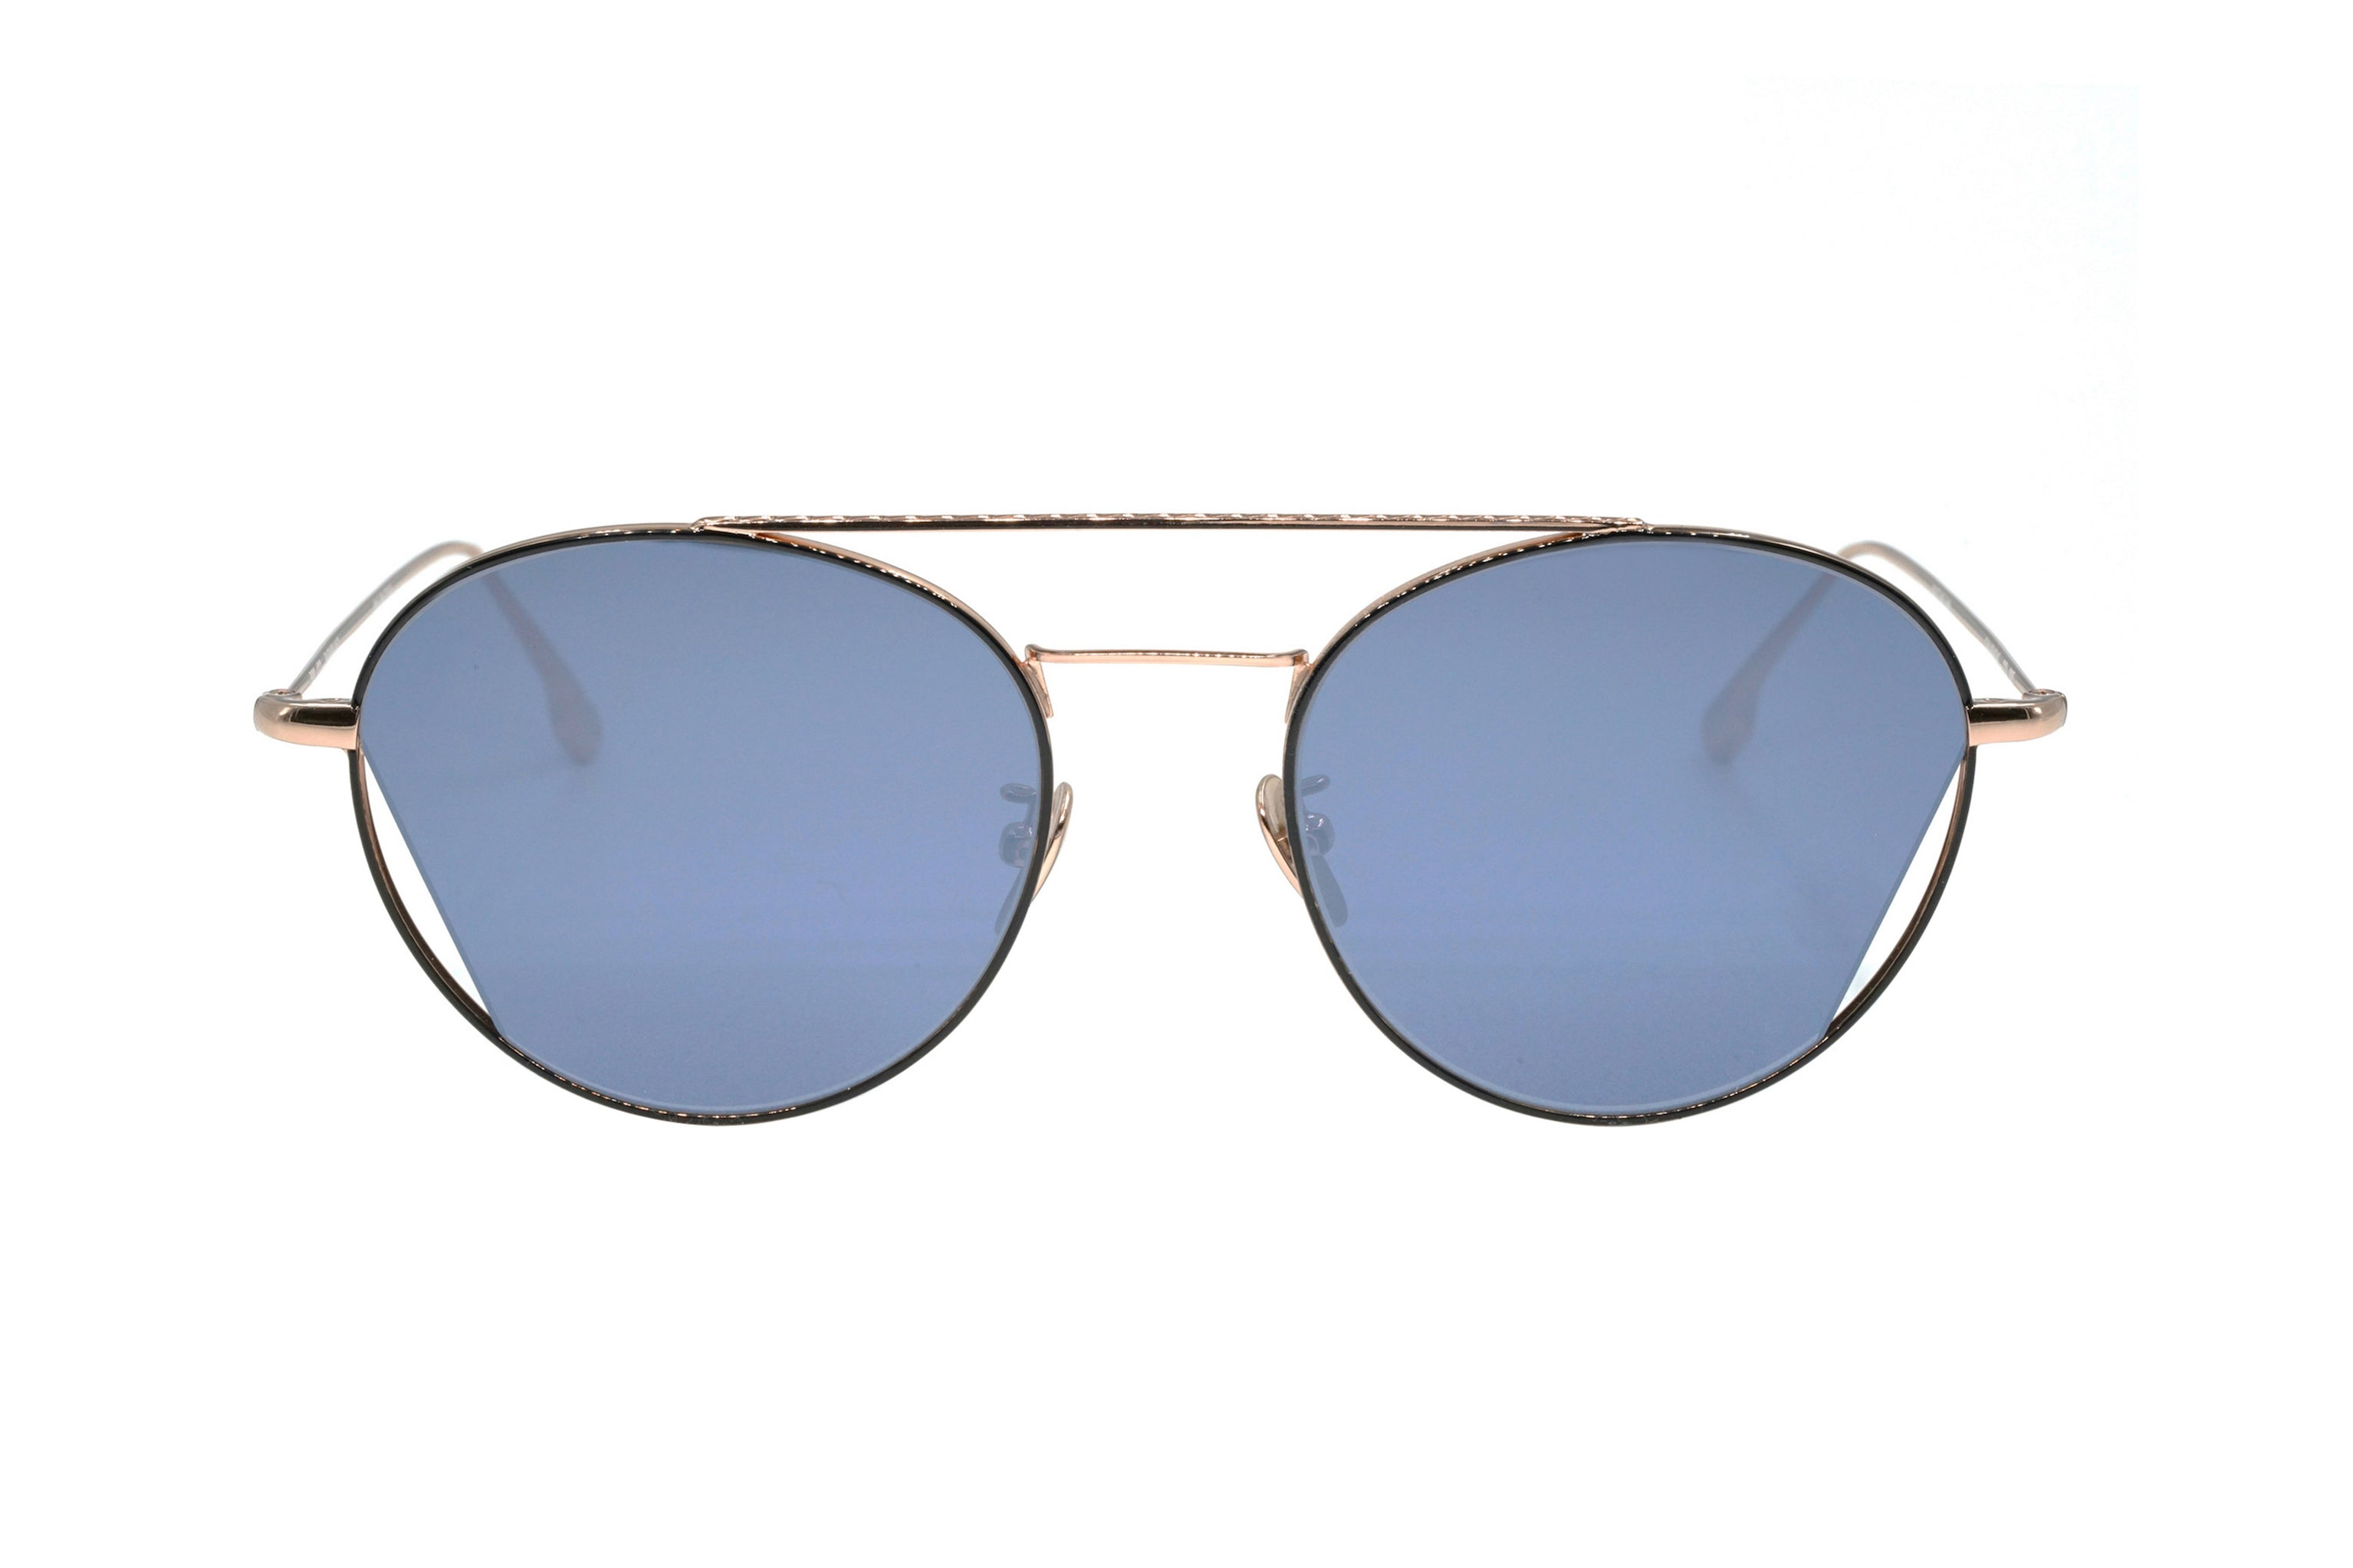 Calabasas in Blue Mirror - Peppertint - Designer sunglasses